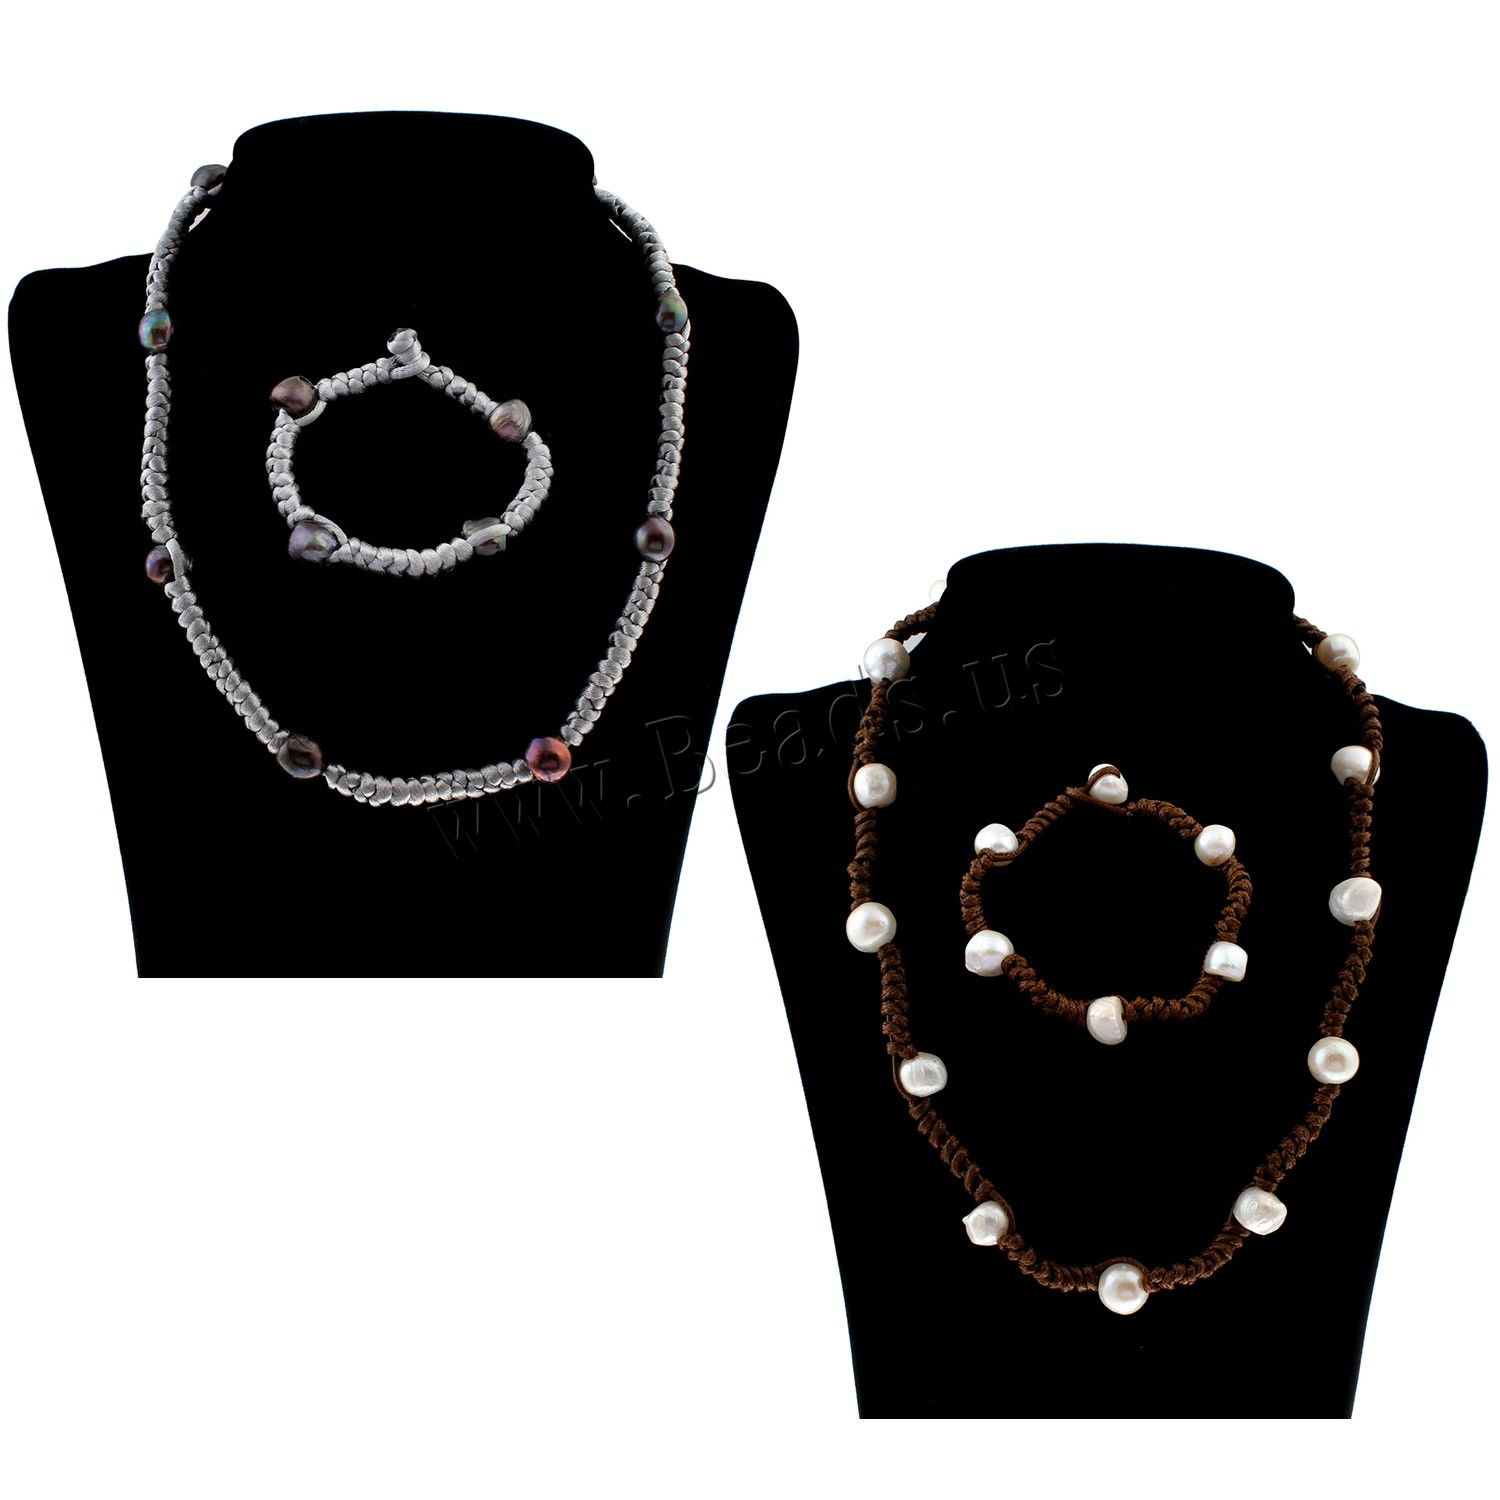 Buy Freshwater Pearl Jewelry Set bracelet & necklace Nylon Cord different styles choice & woman 10-13mm Length:Approx 7.5 Inch Approx 21 Inch Sold Set